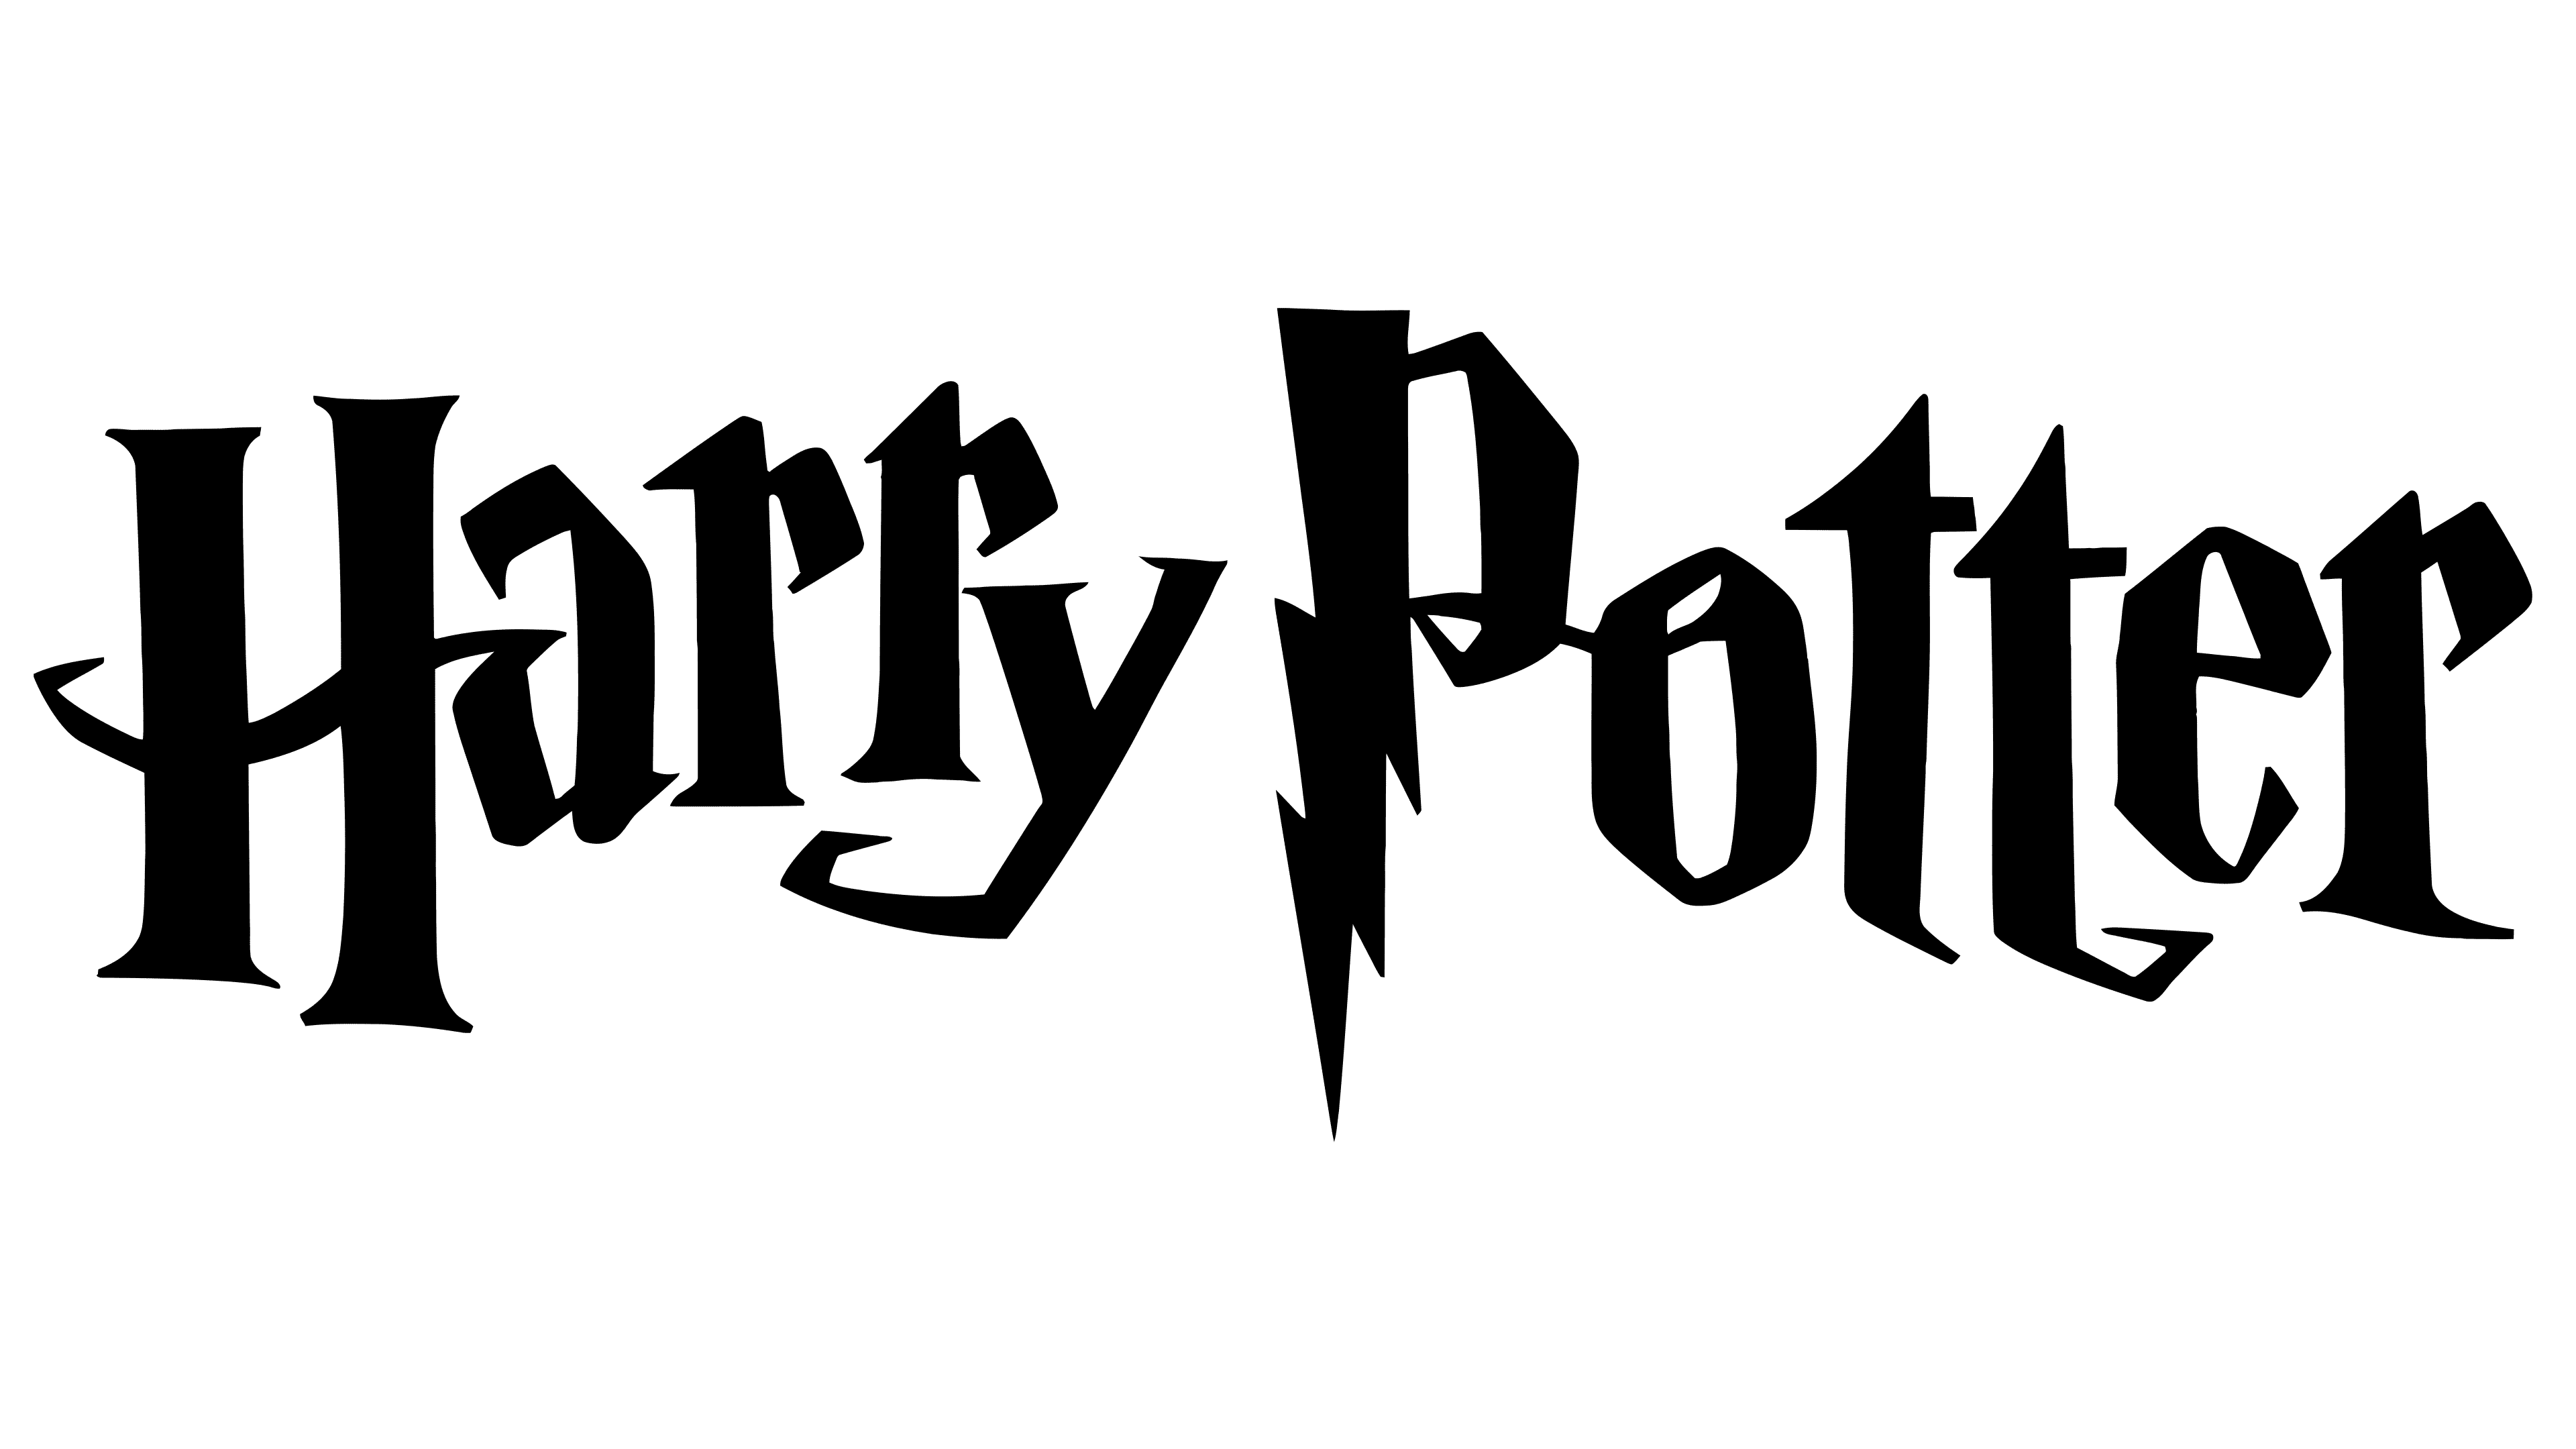 Harry Potter Logo | The most famous brands and company logos in the world